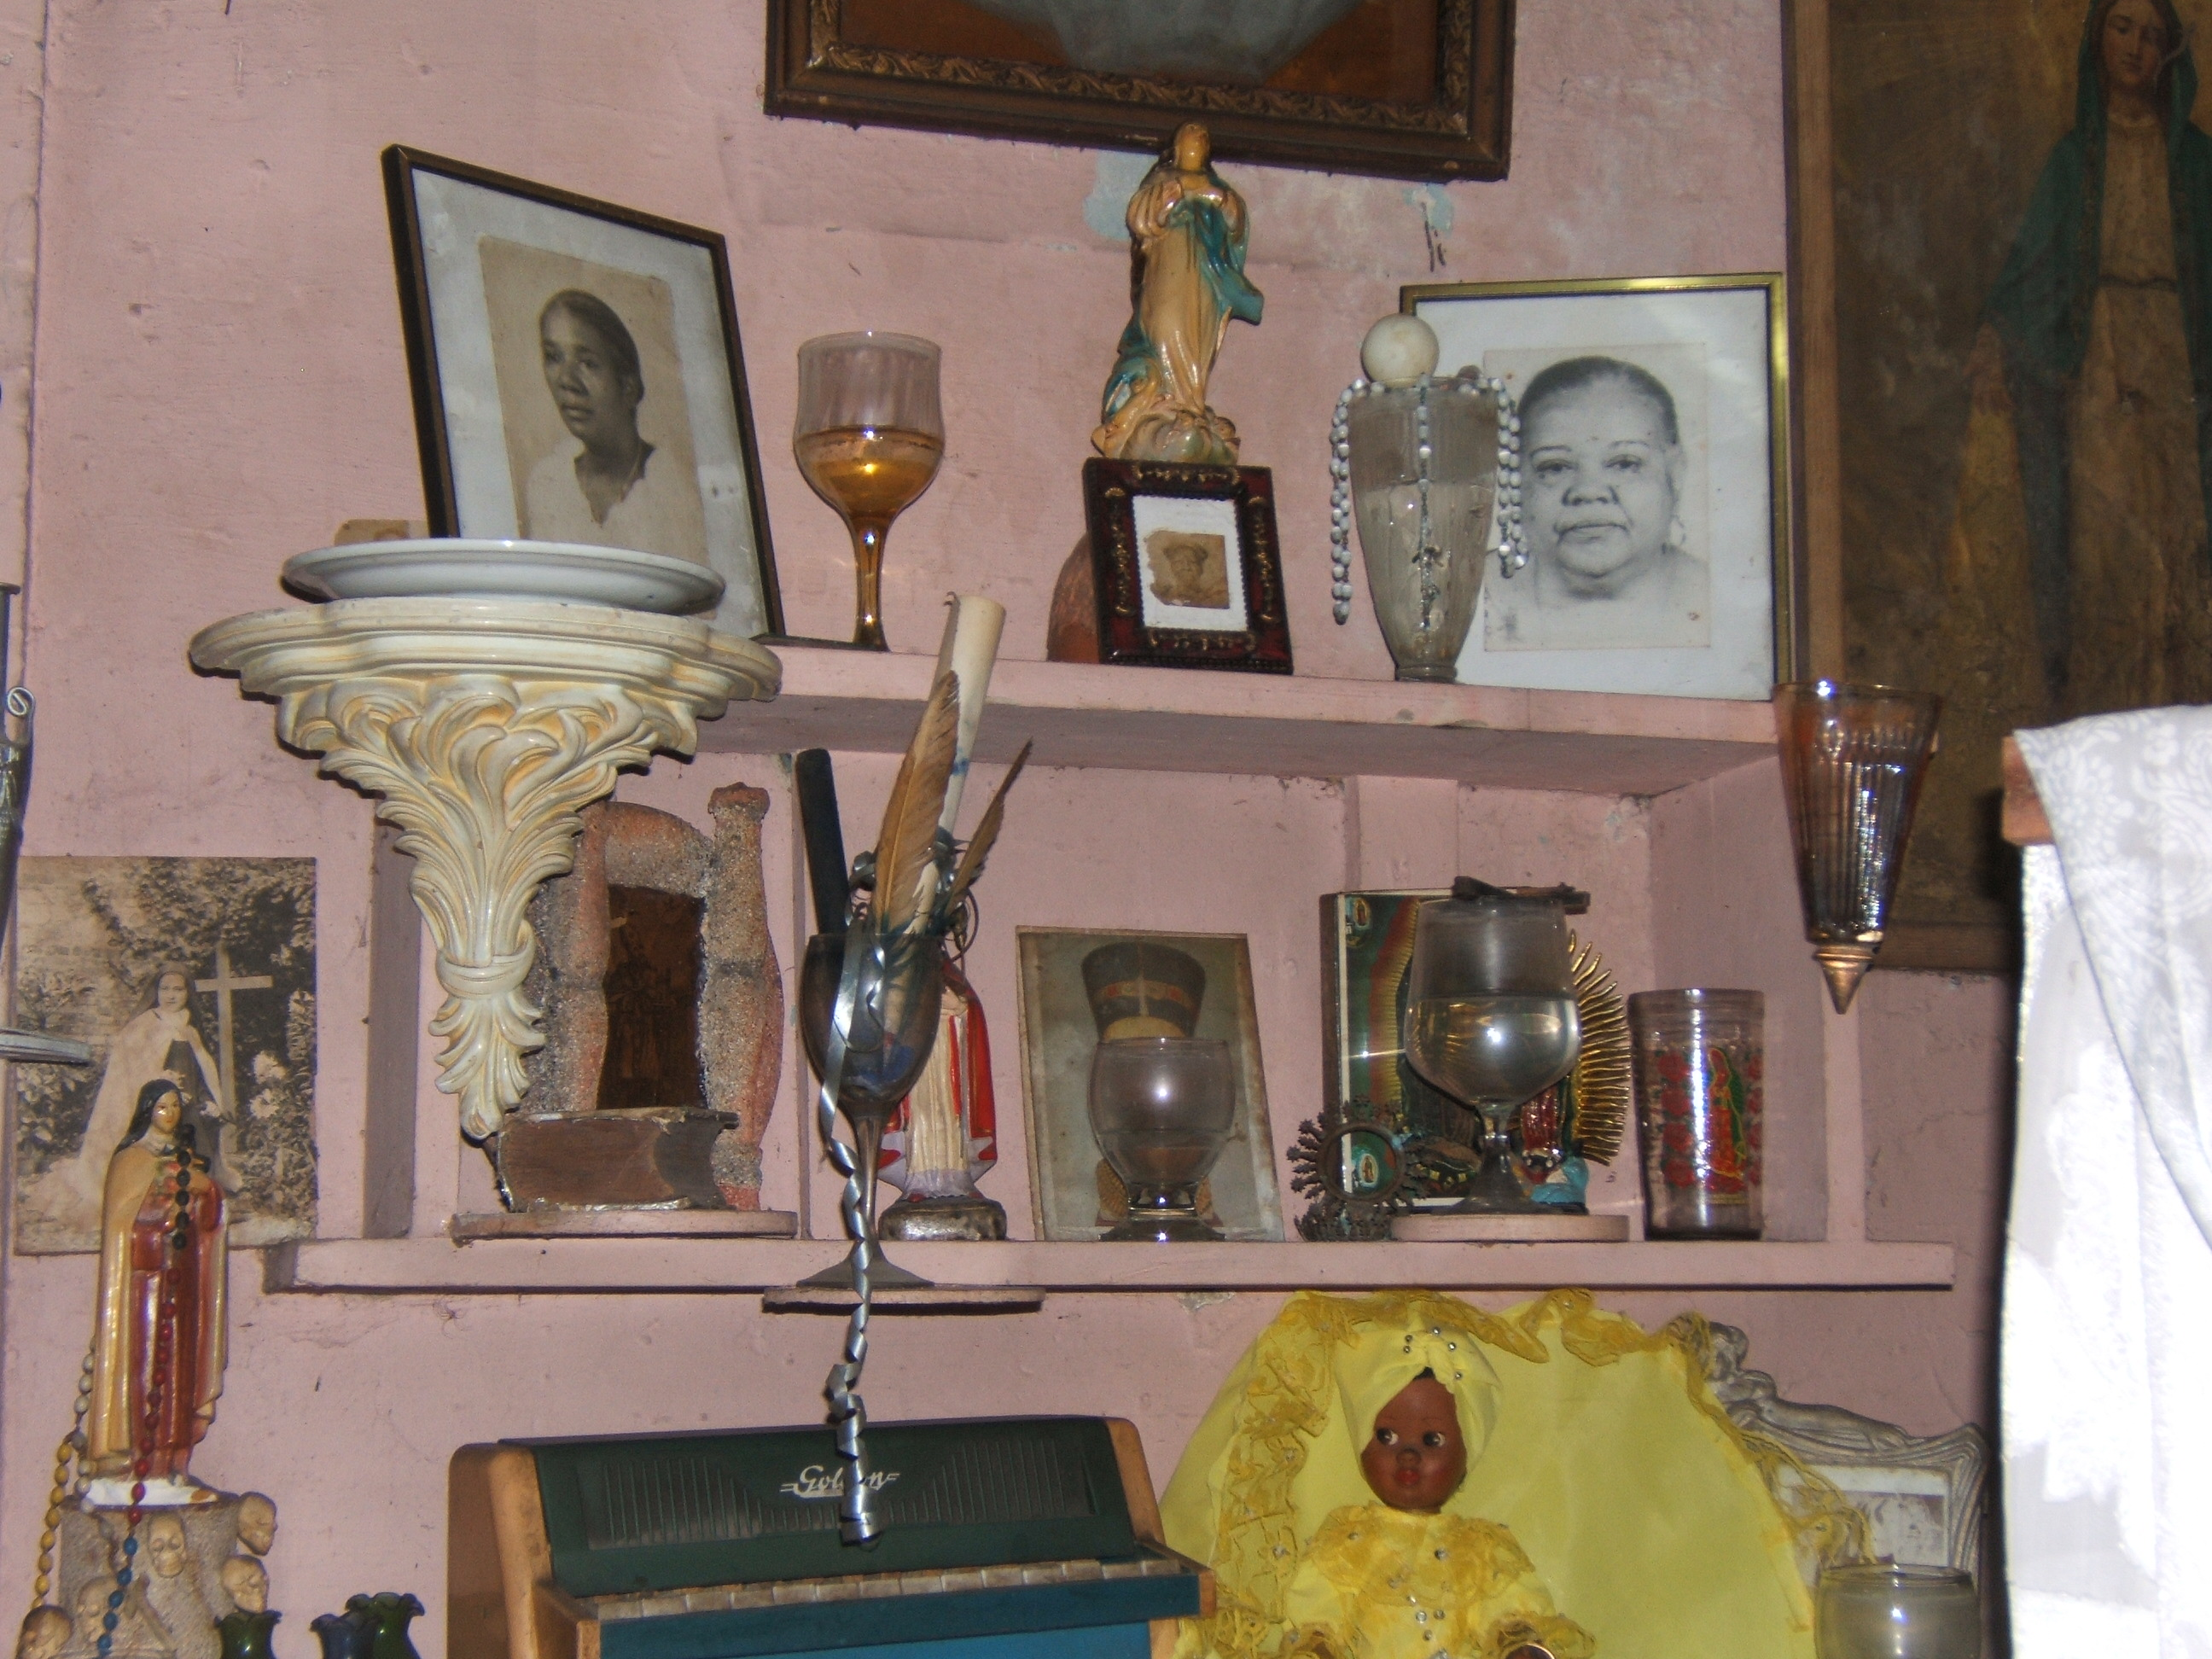 Figure 10. A close-up of Pedro's altar focused on two high shelves holding photographic portraits of deceased relatives, among other objects. Santiago de Cuba, August 2008. Photograph by author.